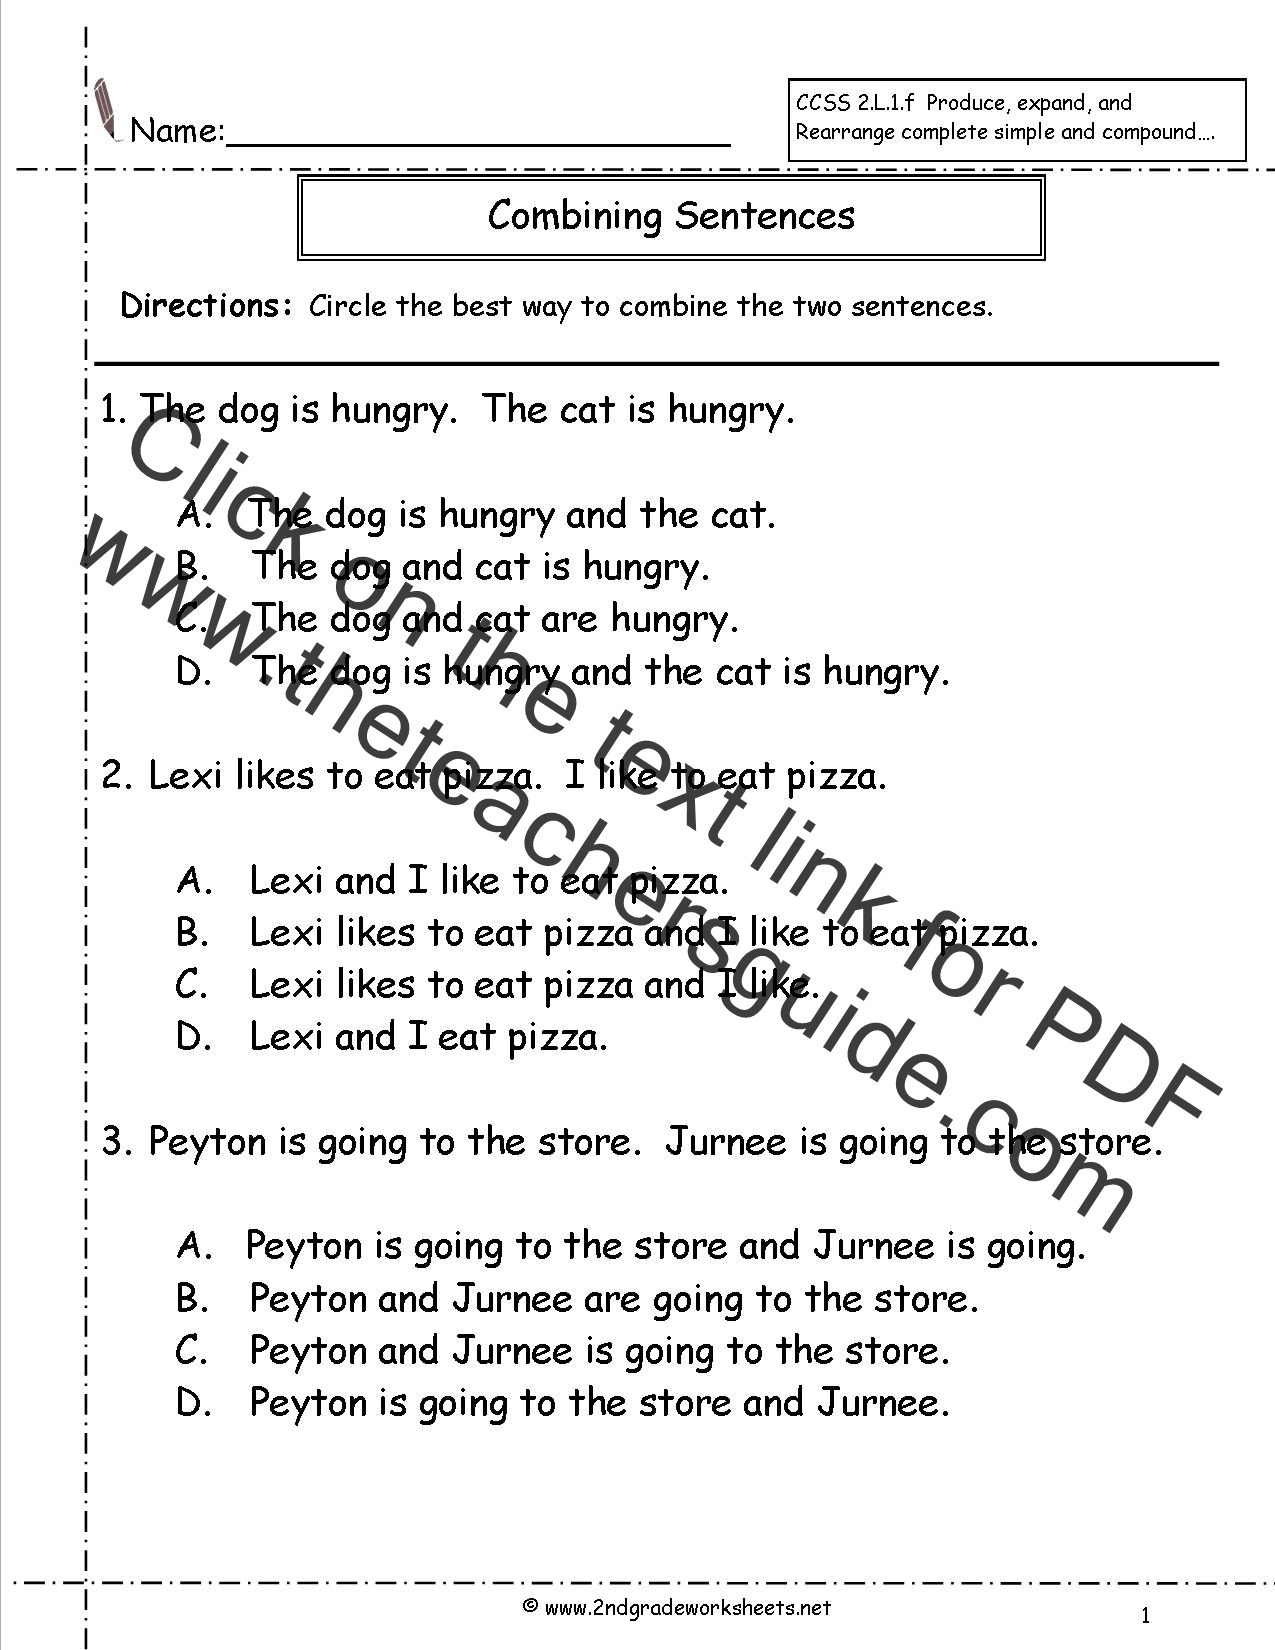 Sentence Correction Worksheets Third Grade: Second Grade Sentences Worksheets  CCSS 2 L 1 f Worksheets ,